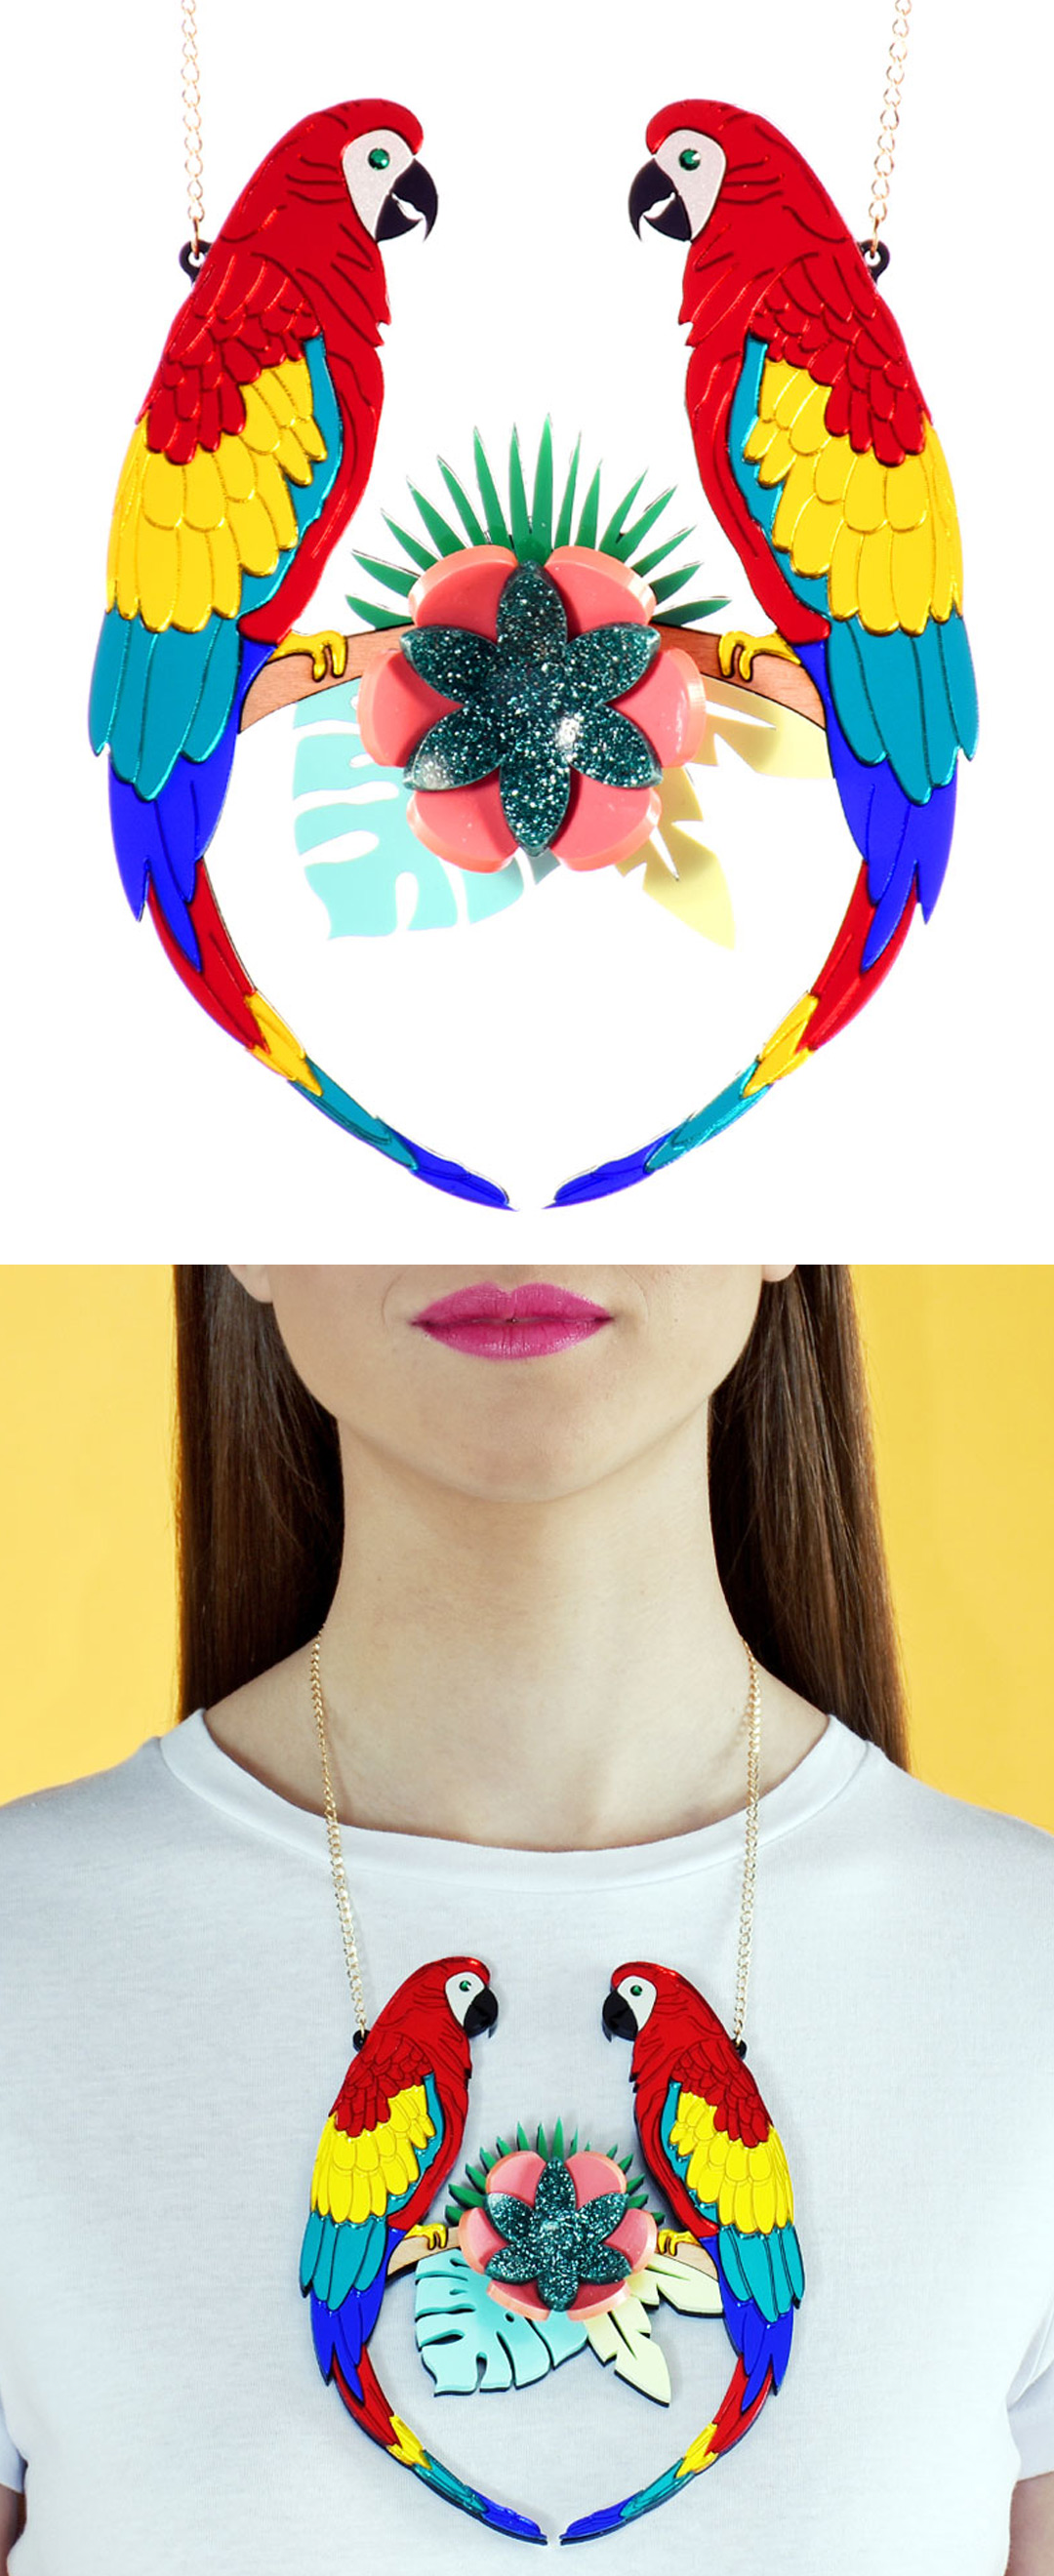 The best statement necklaces by La Vidriola